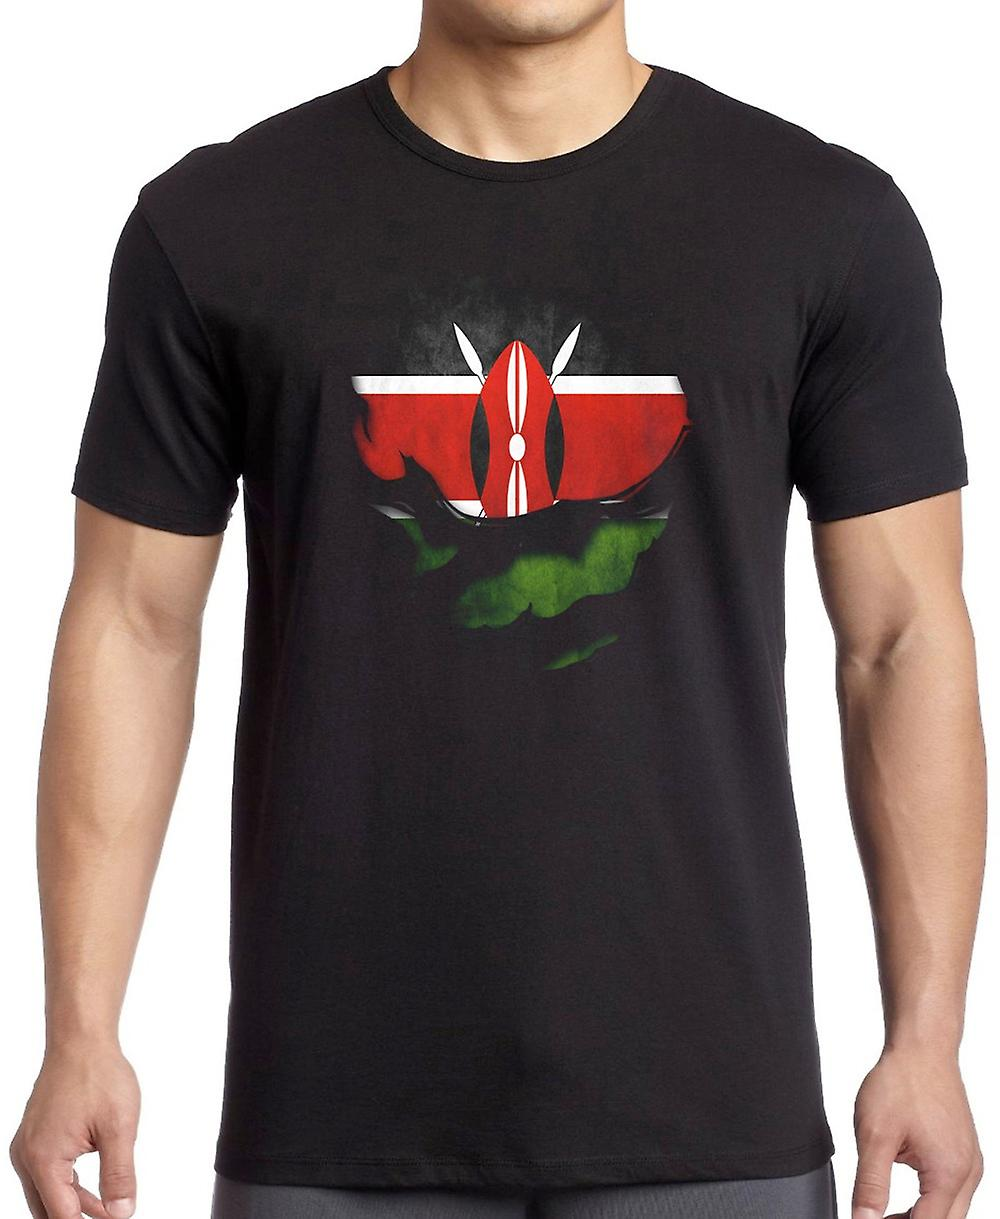 Kenya Kenyan Ripped Effect Under Shirt T Shirt